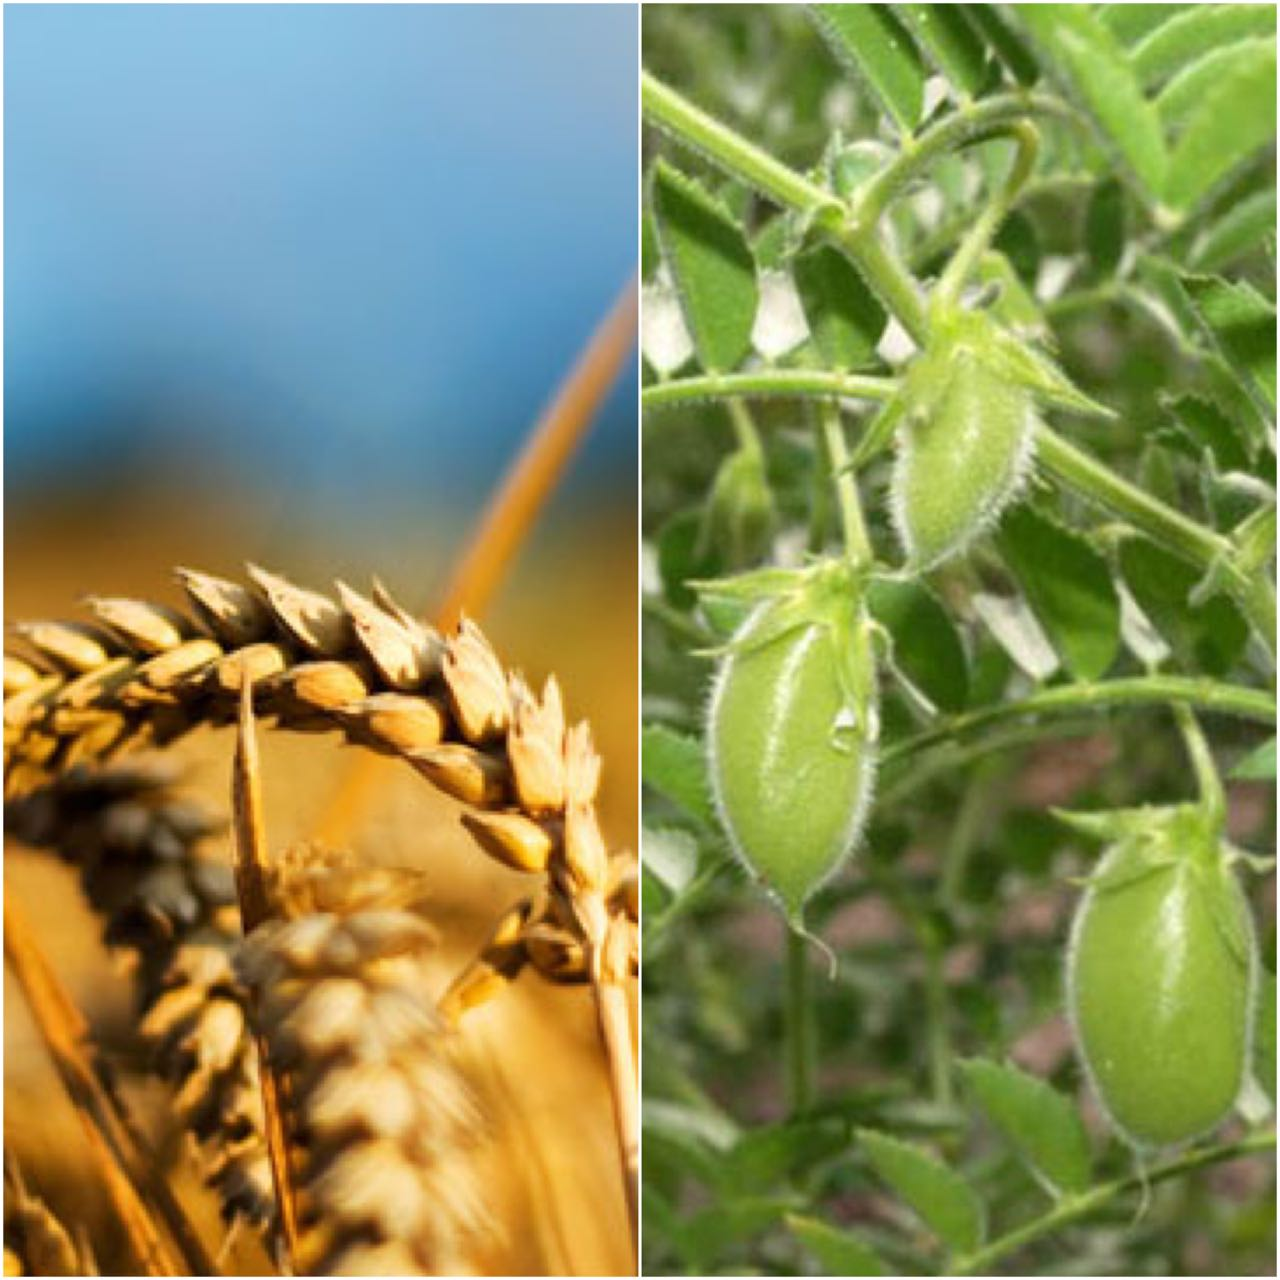 In the  ea on of 18, the «Argo-Vilion» enterpri e introduce  two new crop  into crop rotation. It will be chickpea  and wheat that will let to increa e the number of crop  grown to